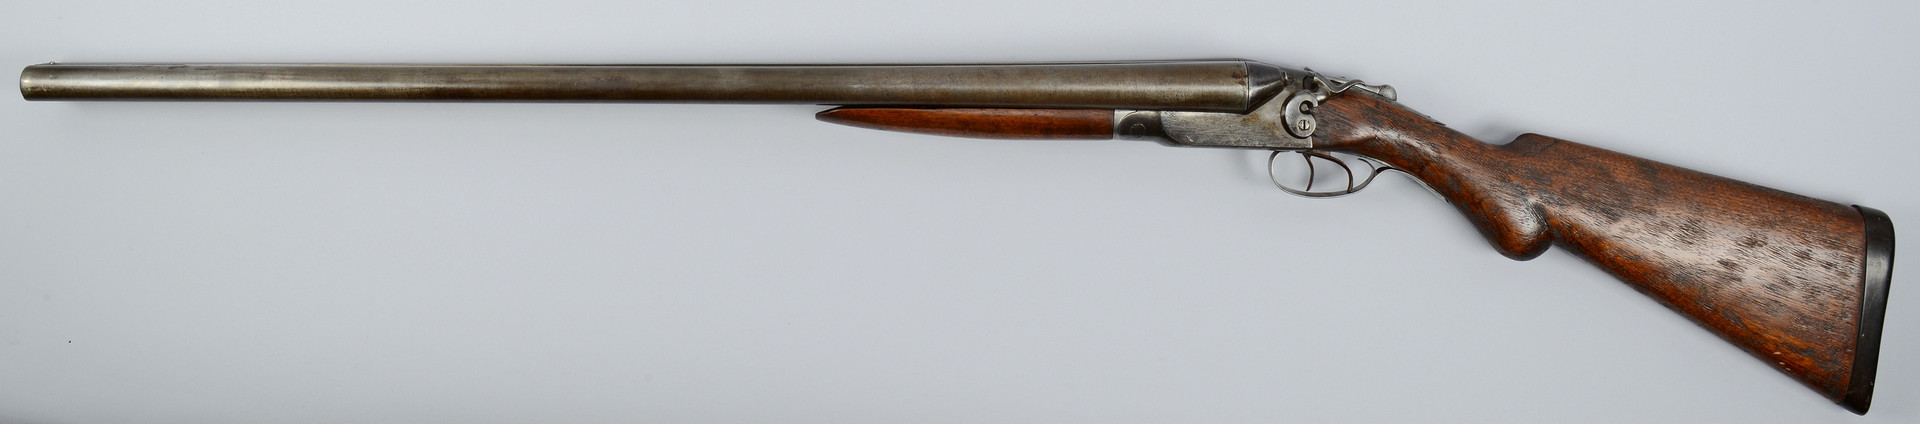 Lot 403: Ithaca Percussion 10 Gauge Shotgun 10 Gauge Double Barrel Shotgun